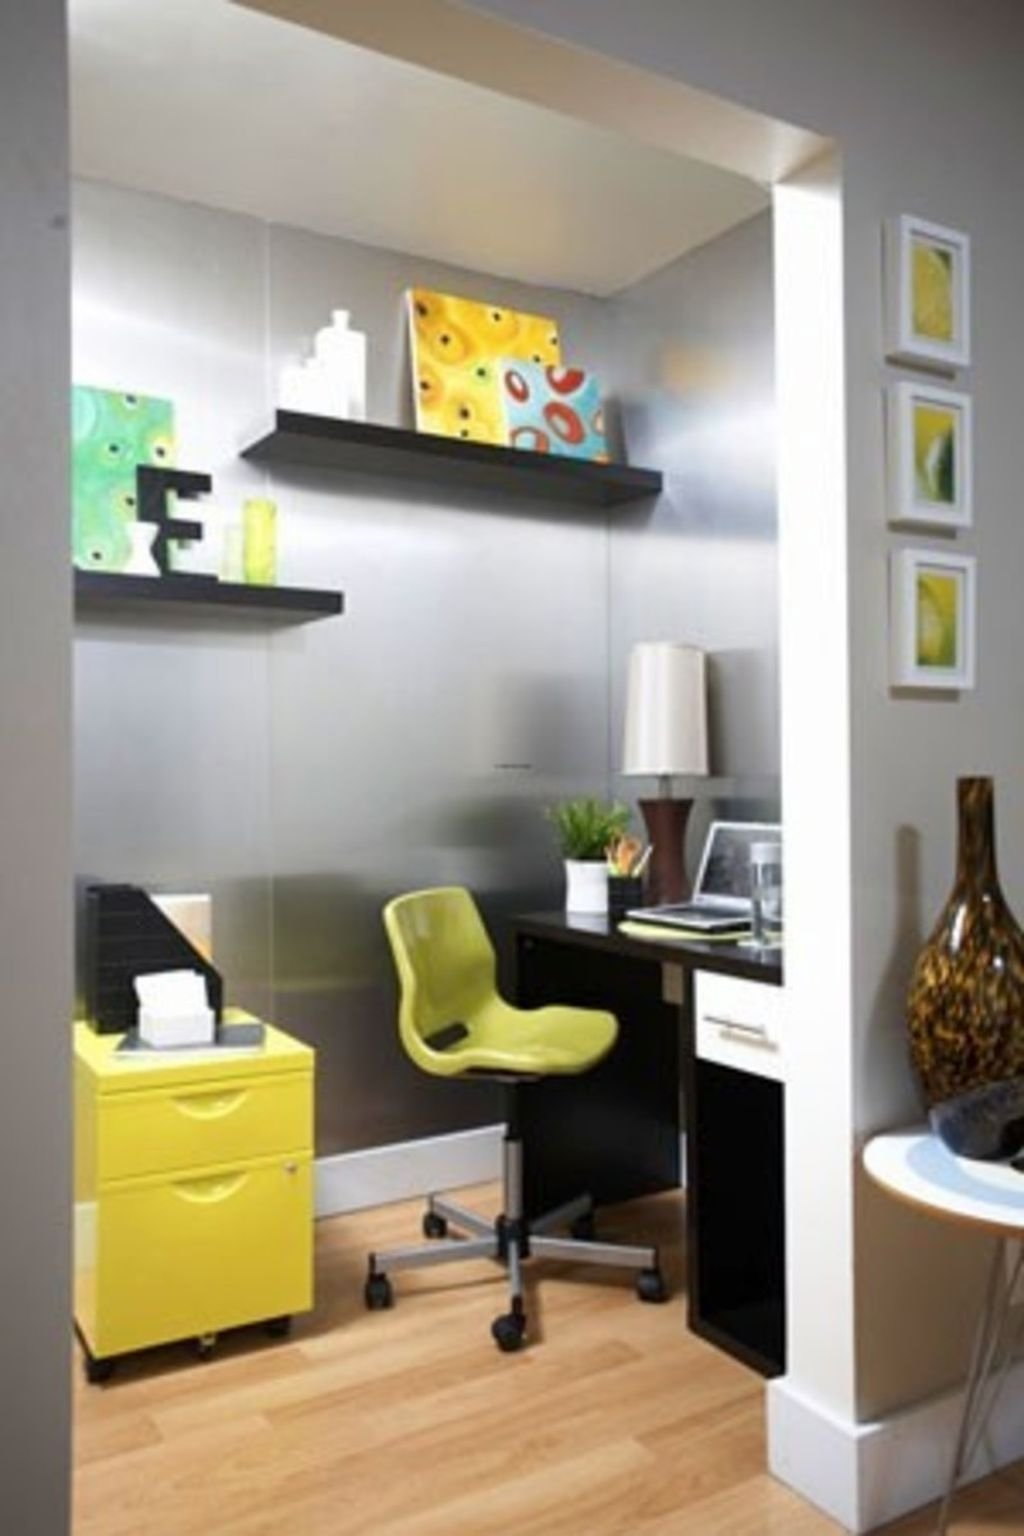 10 Stunning Home Office Ideas Small Spaces office amusing home office space design ideas creative office 2020